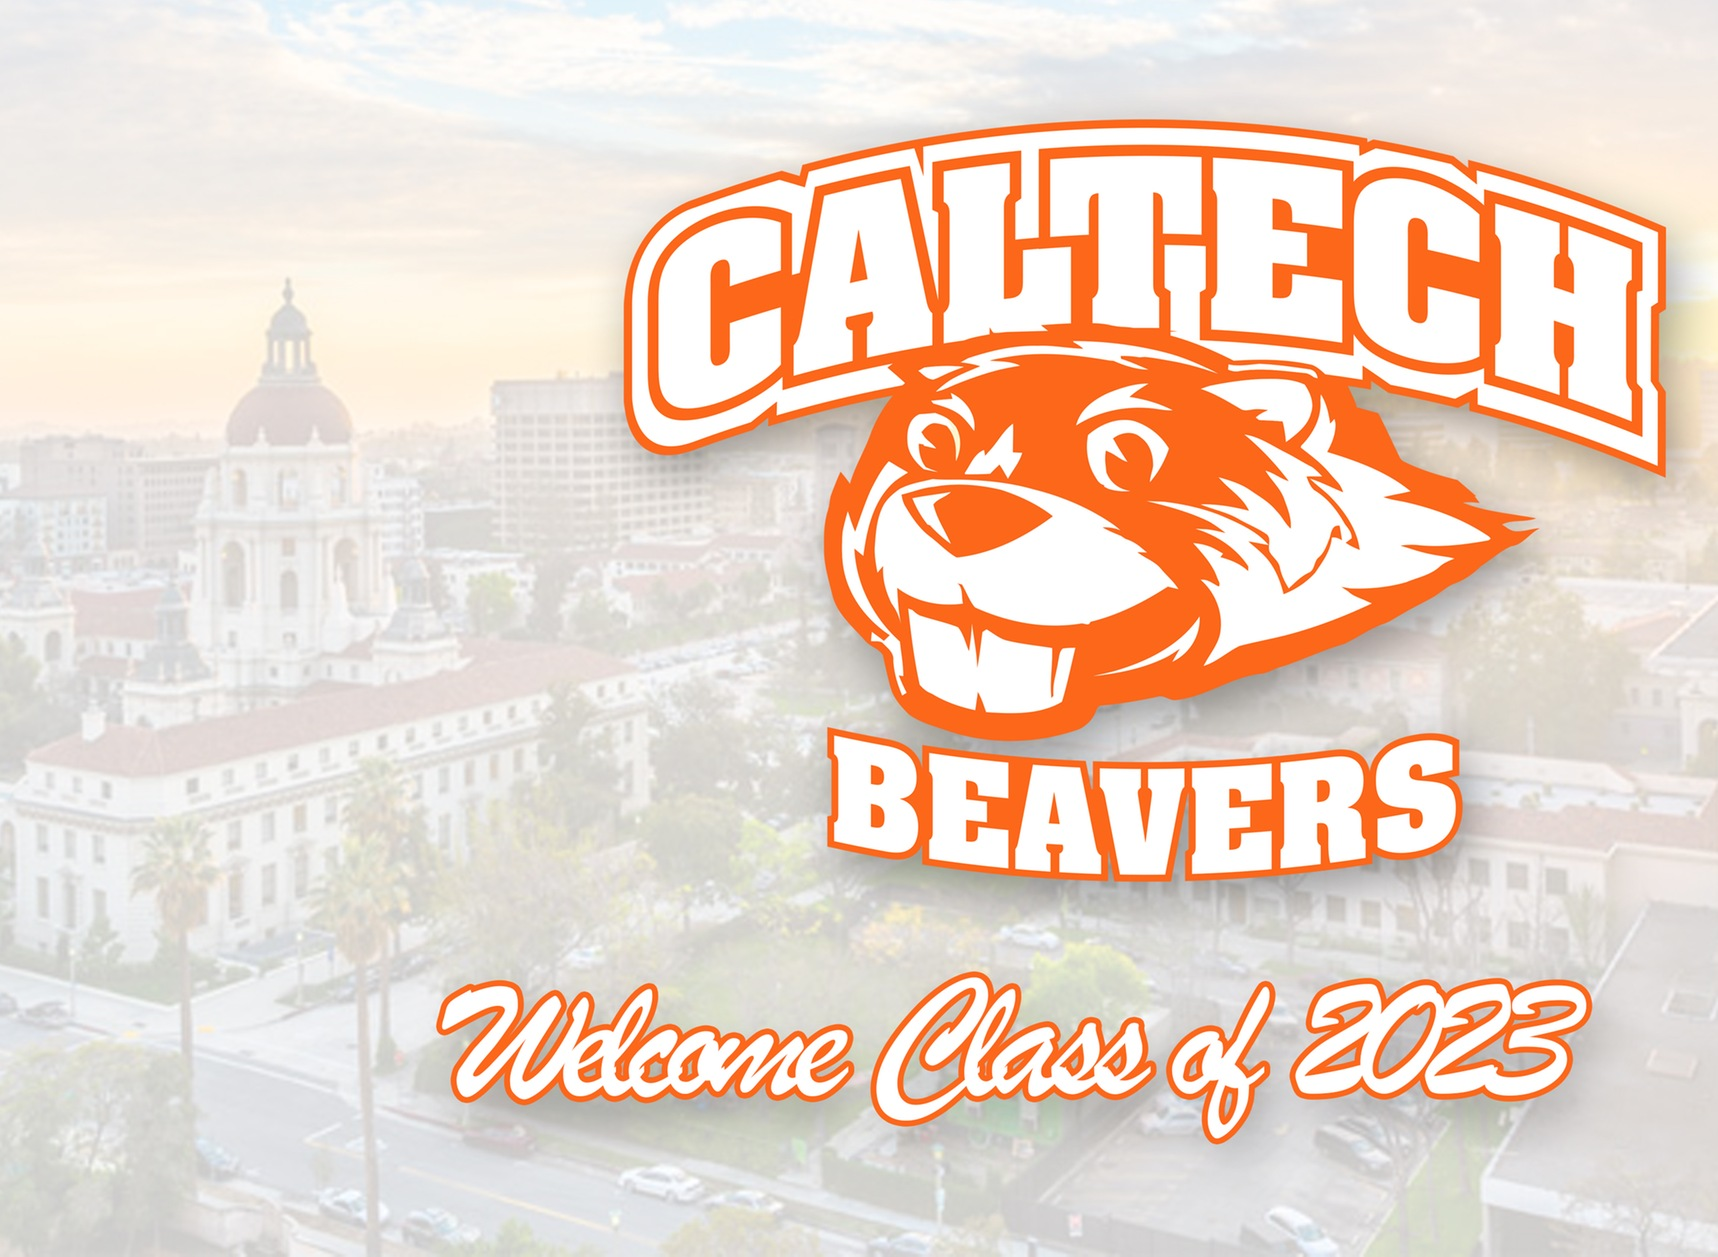 Introducing... Caltech Women's Tennis Class of 2023